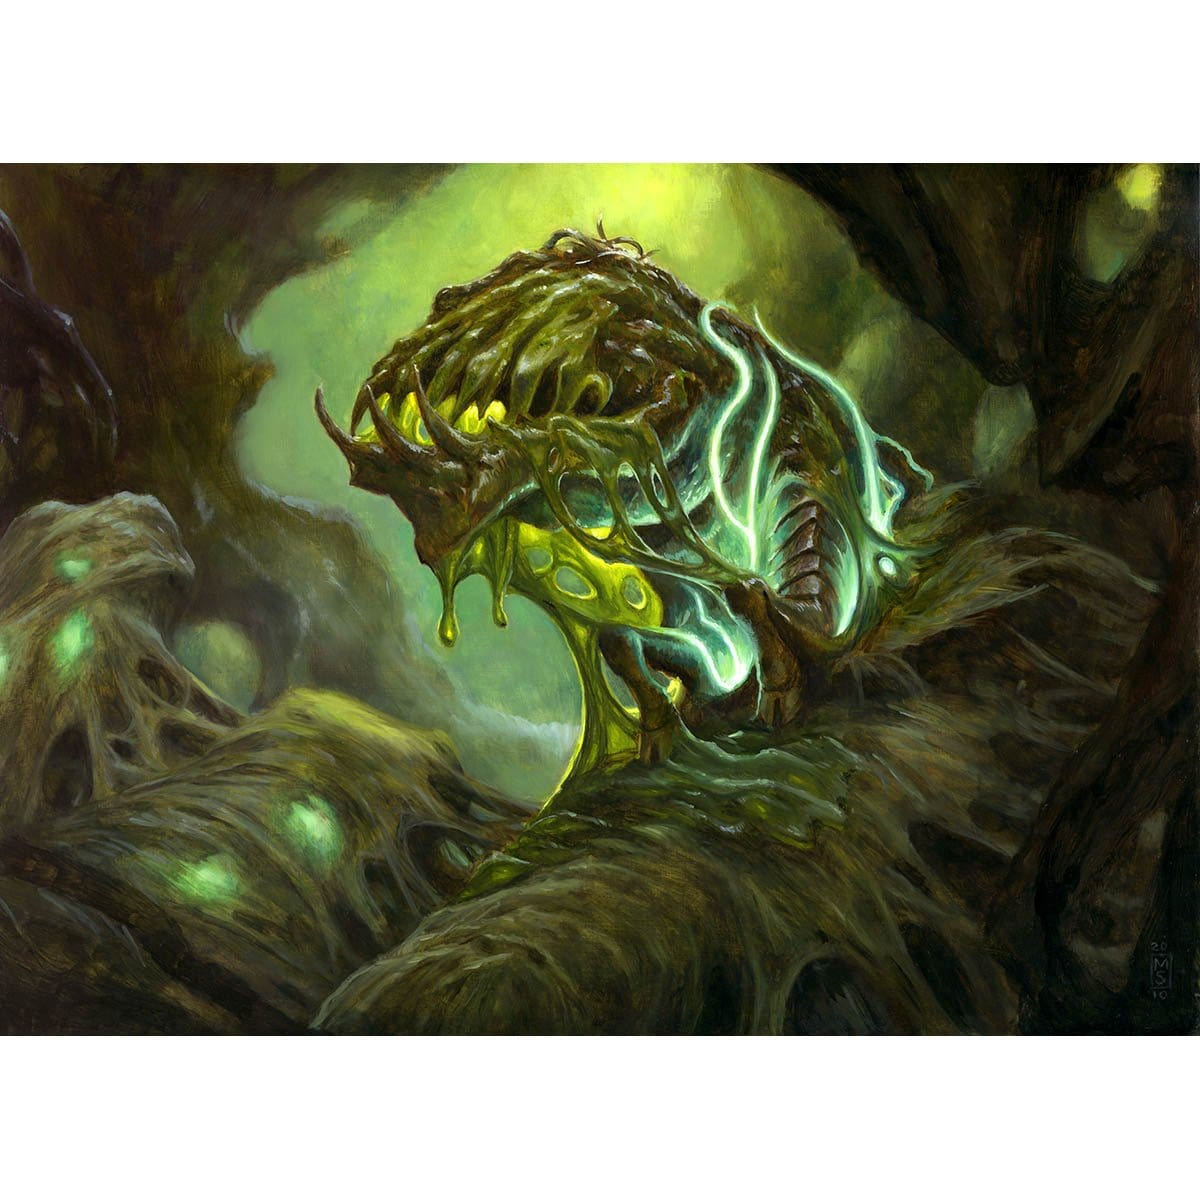 Noxious Revival Print - Print - Original Magic Art - Accessories for Magic the Gathering and other card games